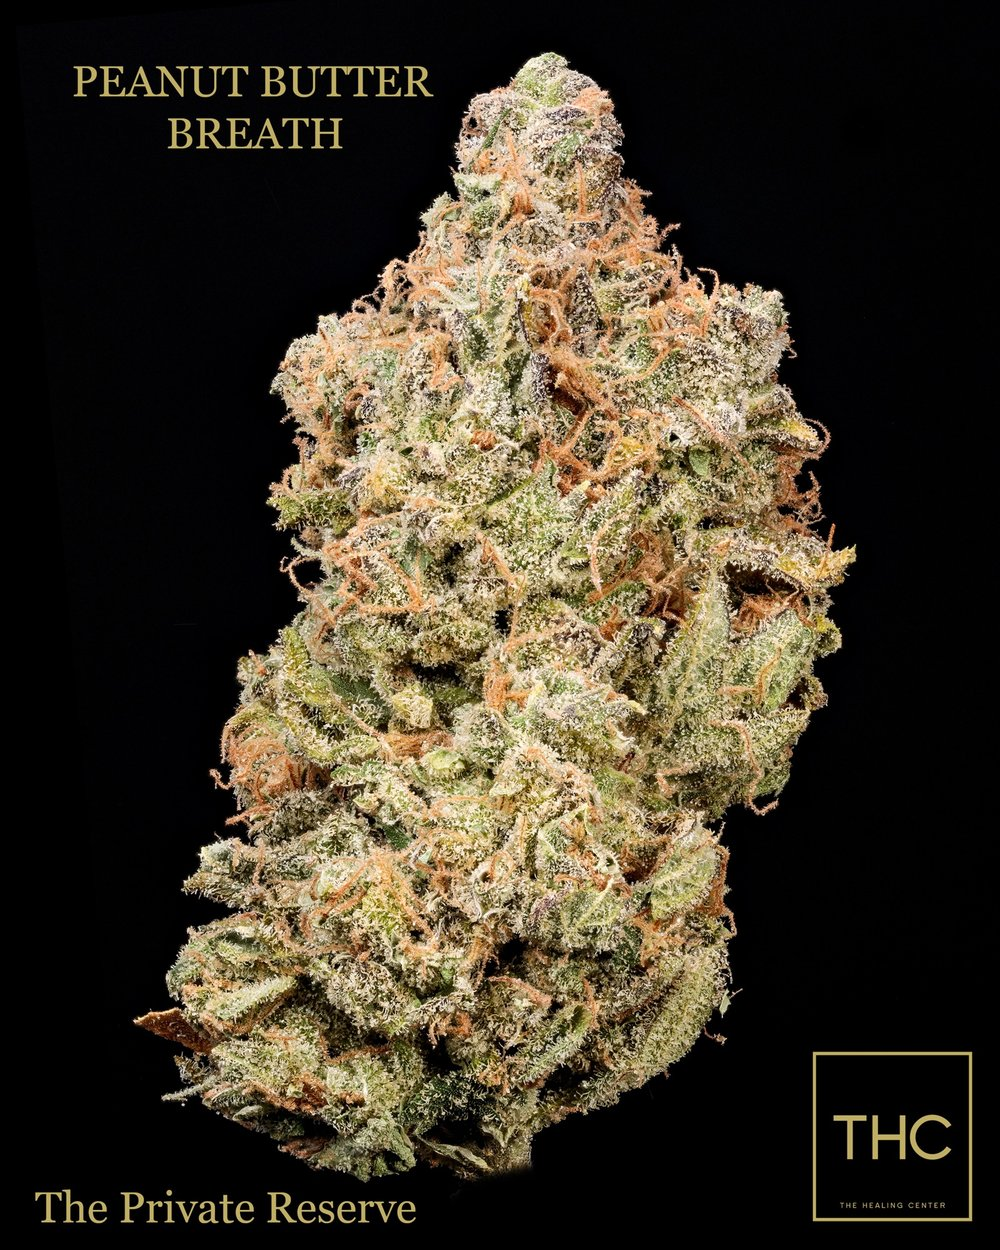 Peanut Butter Breath The Private Reserve THC.jpg